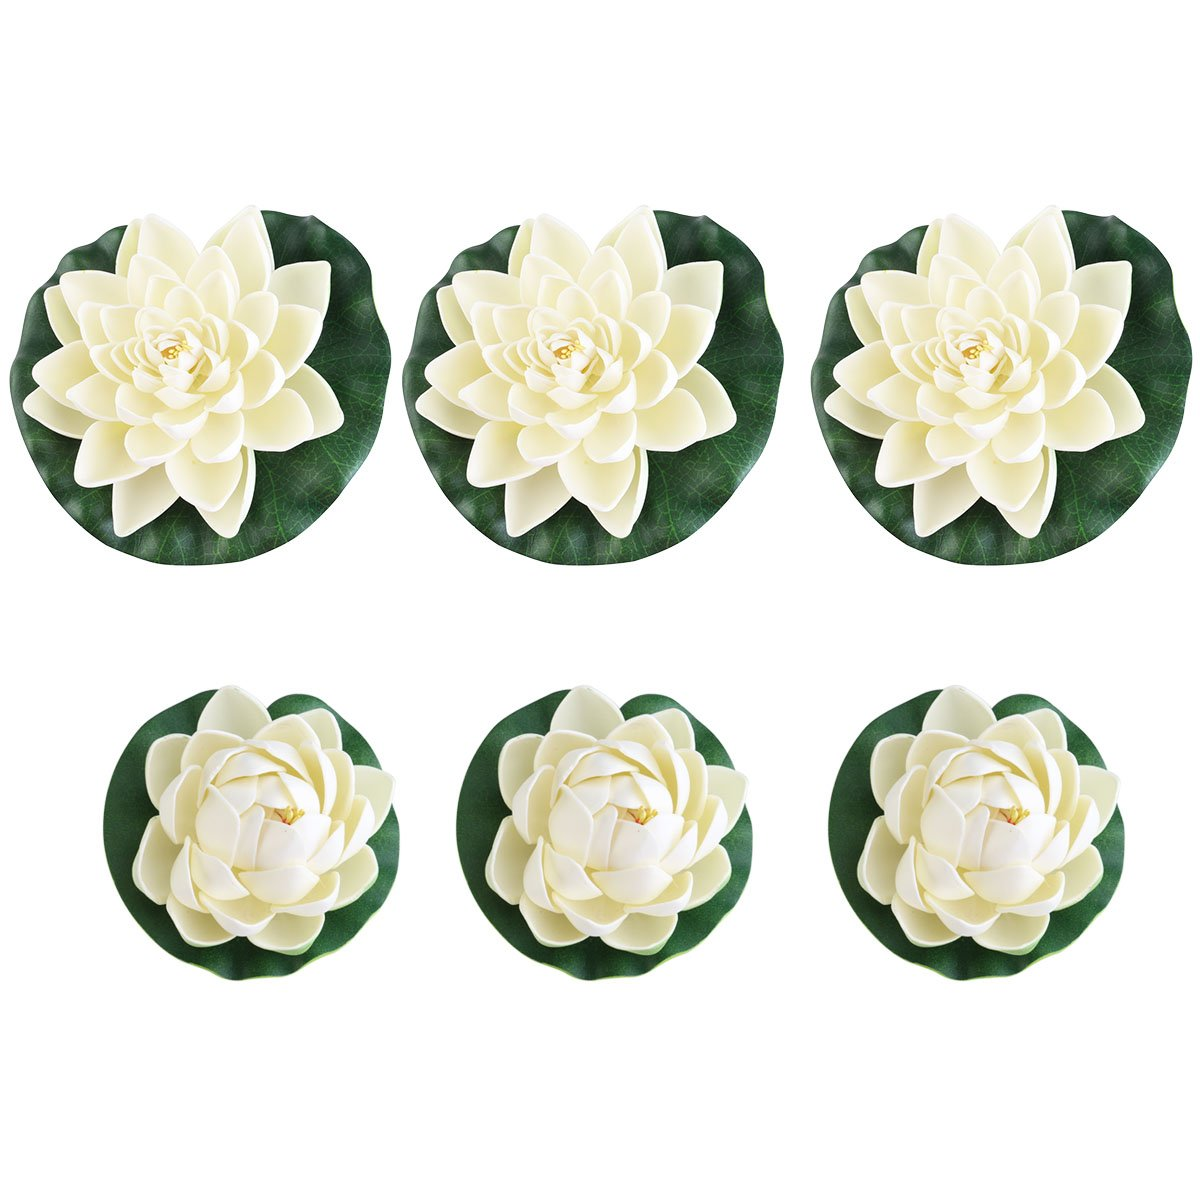 Ueetek 6pcs artificiale schiuma Pond piante Lotus Lilies for home decor bianco